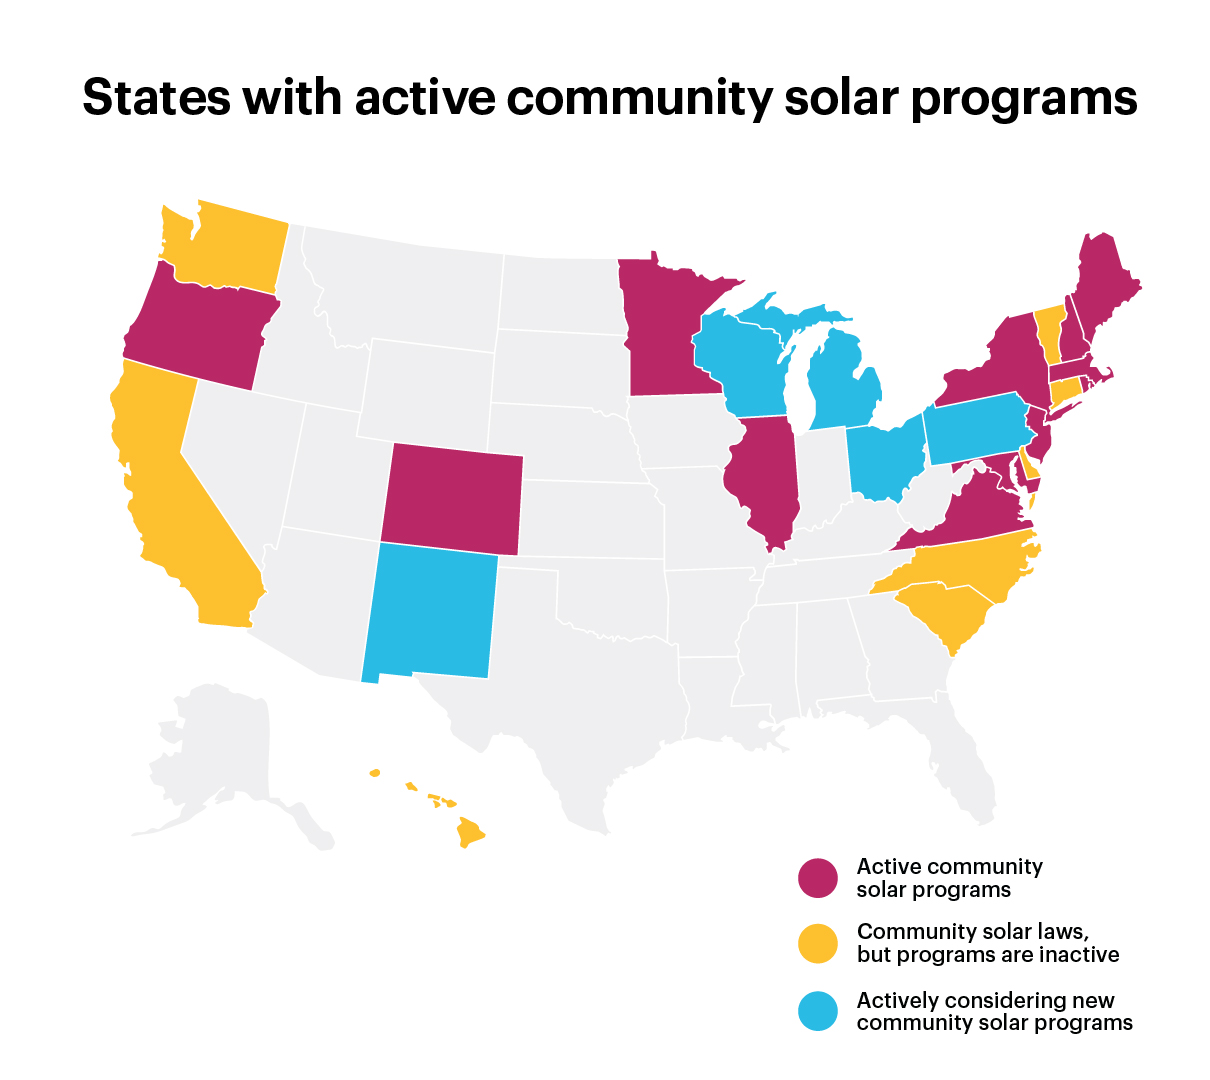 Map showing the status of community solar legislation in each state. States with active community solar programs: Oregon, Colorado, Minnesota, Illinois, Virginia, Maryland, DC, New Jersey, New York, Rhode Island, Massachusetts, New Hampshire, Maine. States with community solar laws but no active programs: Hawaii, Washington, California, South Carolina, North Carolina, Delaware, Connecticut, Vermont. States actively considering new community solar programs: New Mexico, Wisconsin, Michigan, Ohio, Pennsylvania